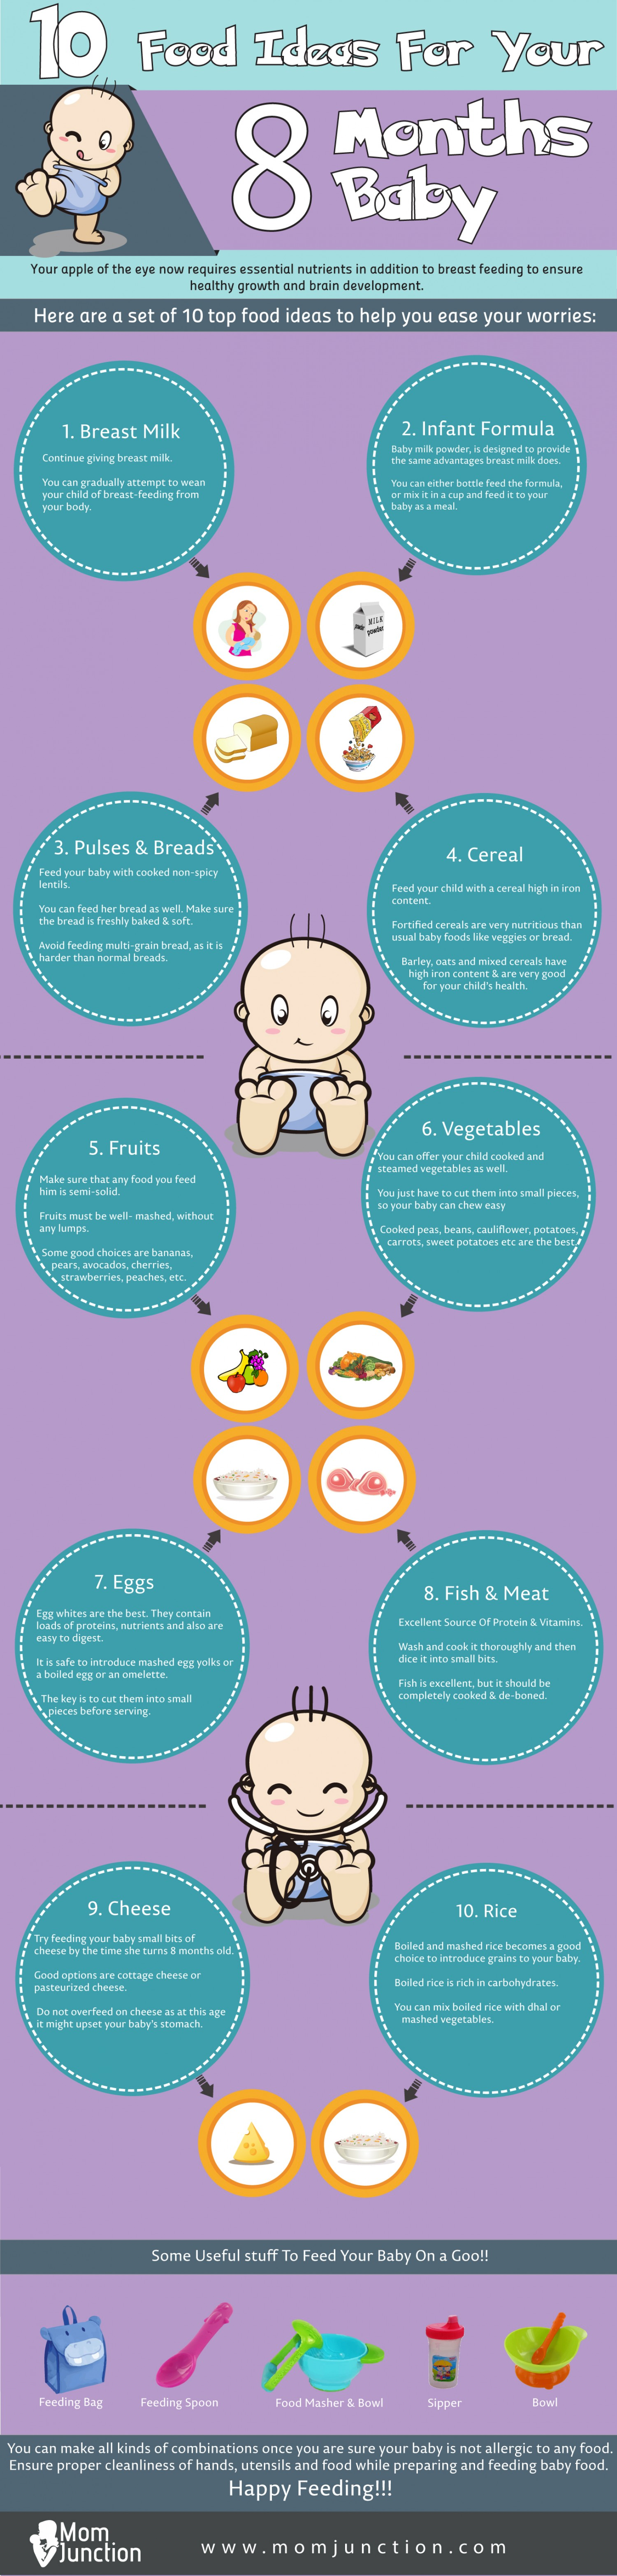 Thinking Of Interesting Best Ways Introducing Your 8 Month Old Baby To Solid Foods Here We Have Listed What Are The Top 10 Ideas For Food